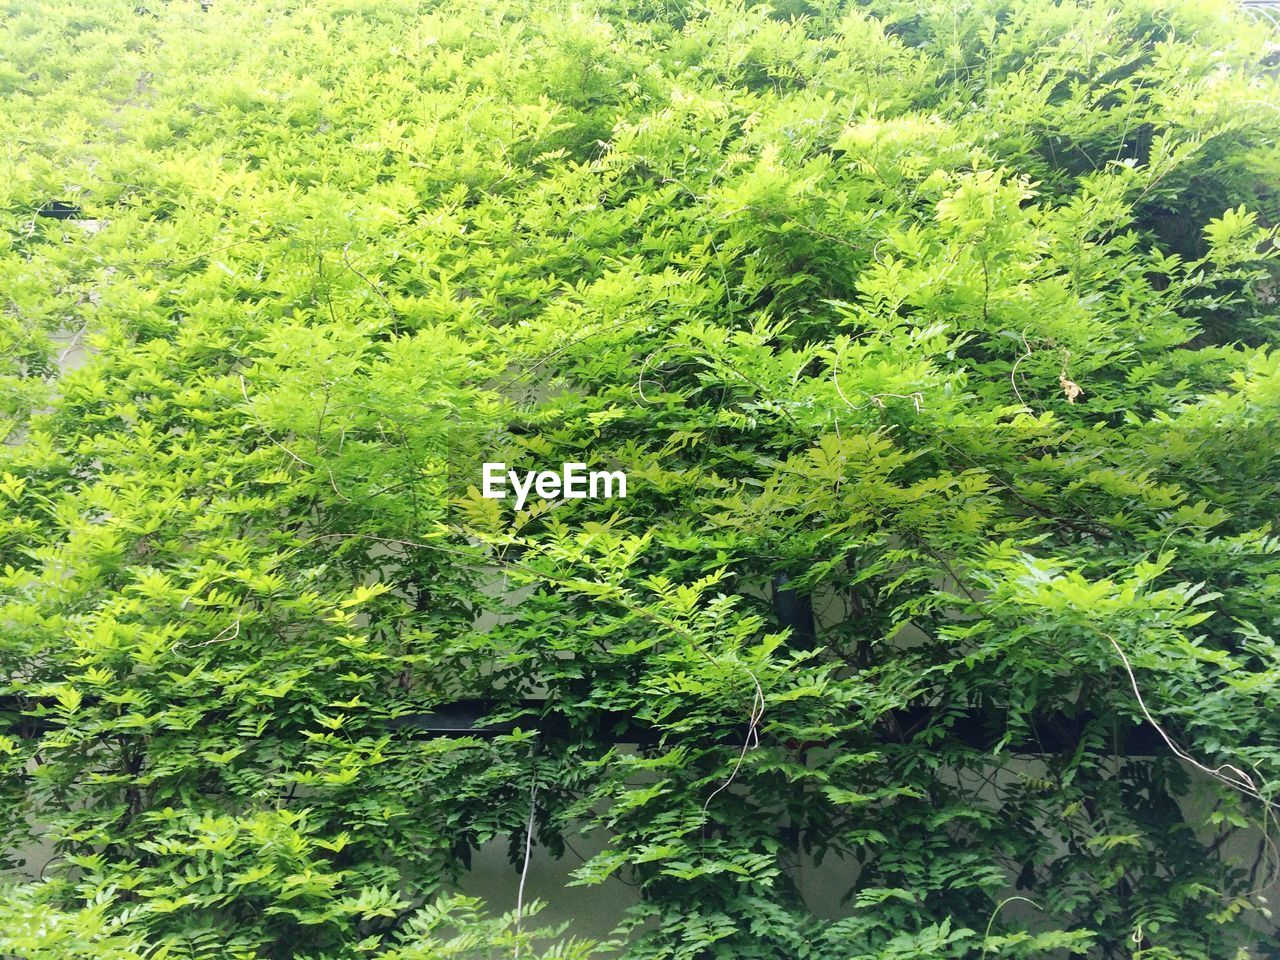 HIGH ANGLE VIEW OF GREEN TREES